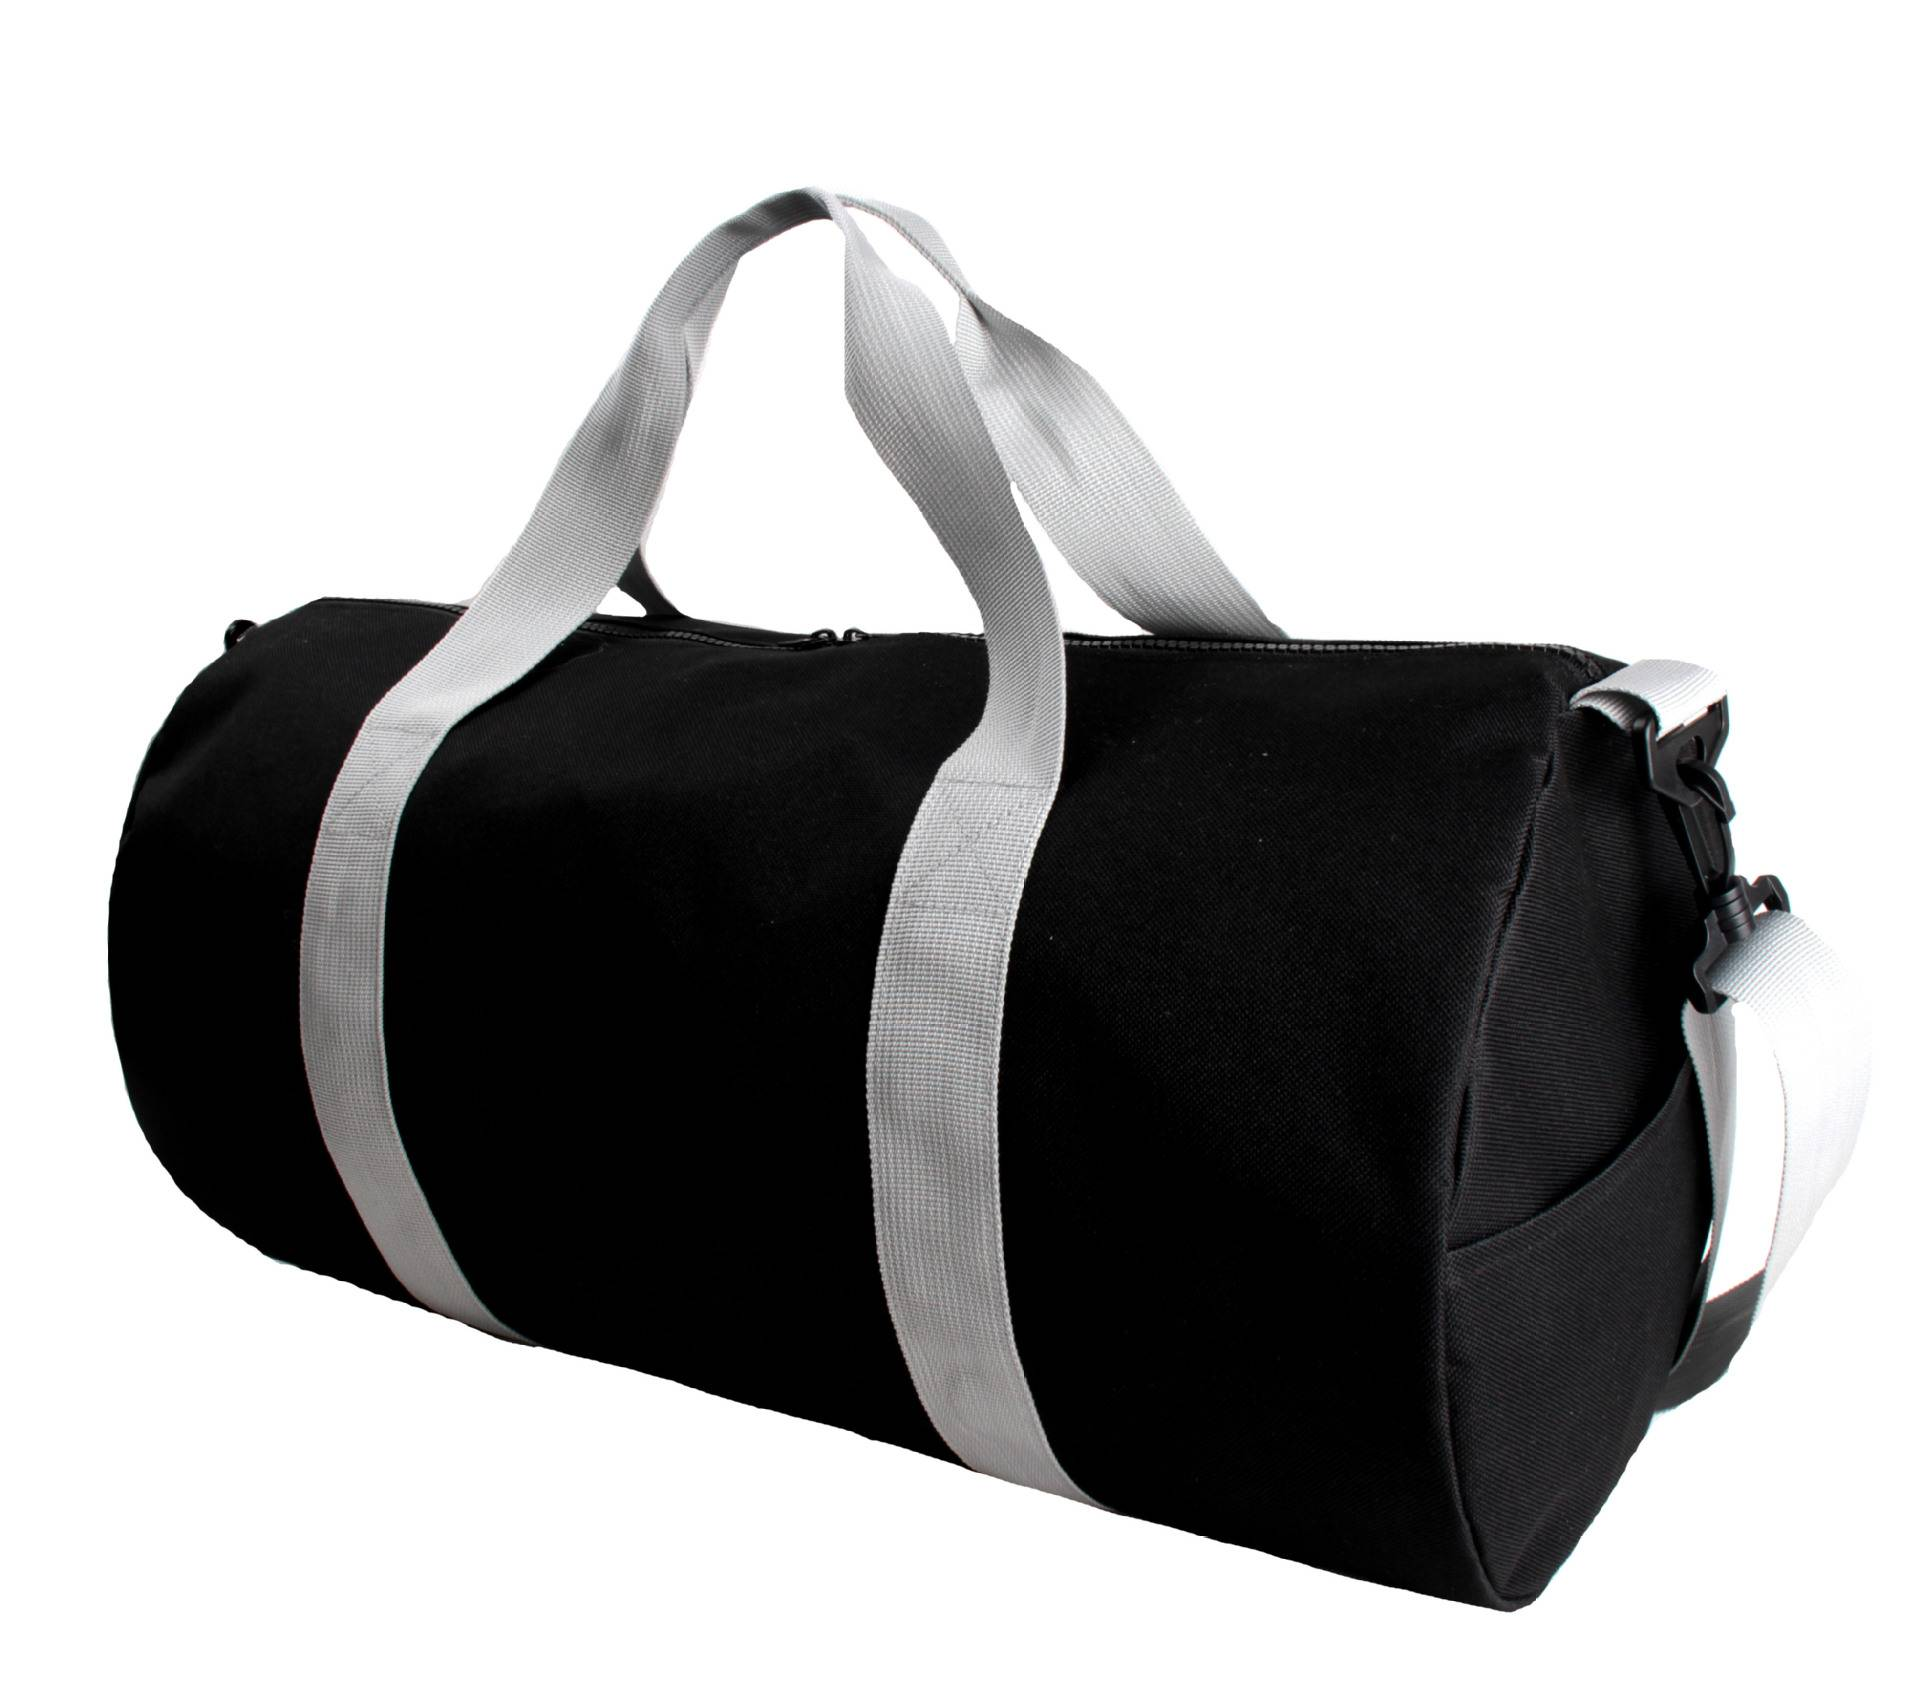 BT-0018 Custom printed 600d polyester duffle bag